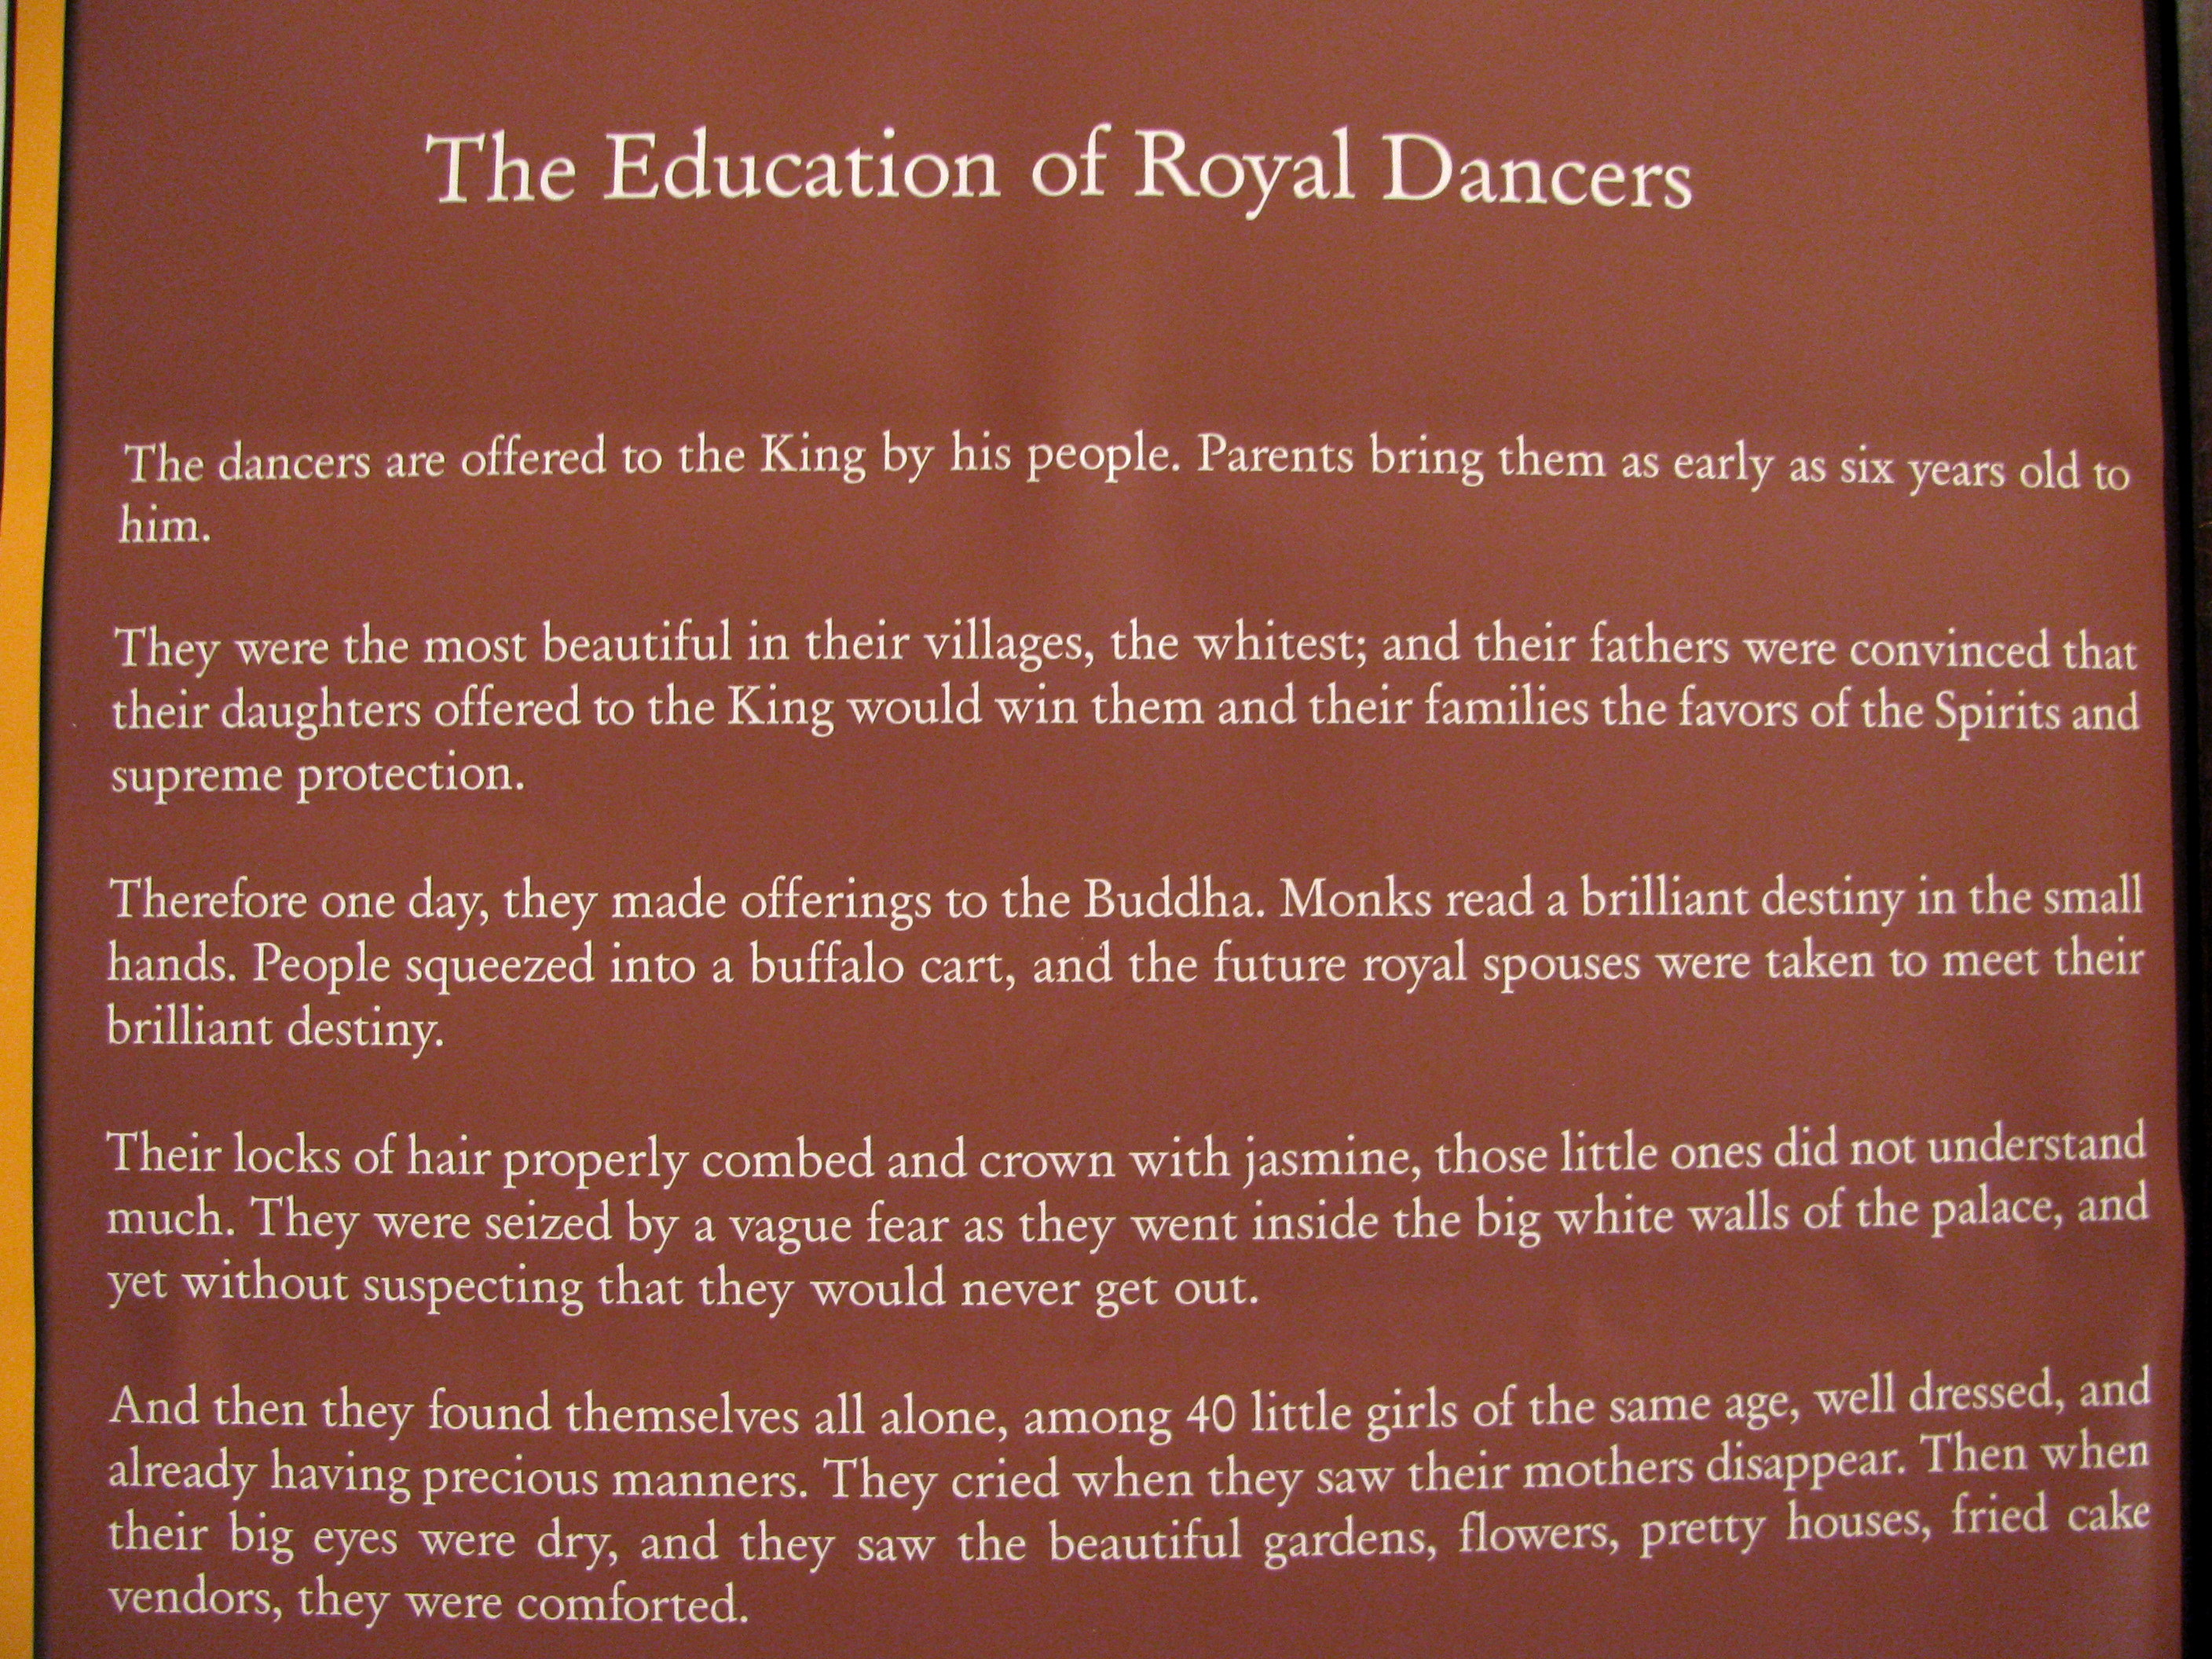 Sign from a photo exhibit on royal dancers, Le Meridien Angkor, Siem Reap, Cambodia